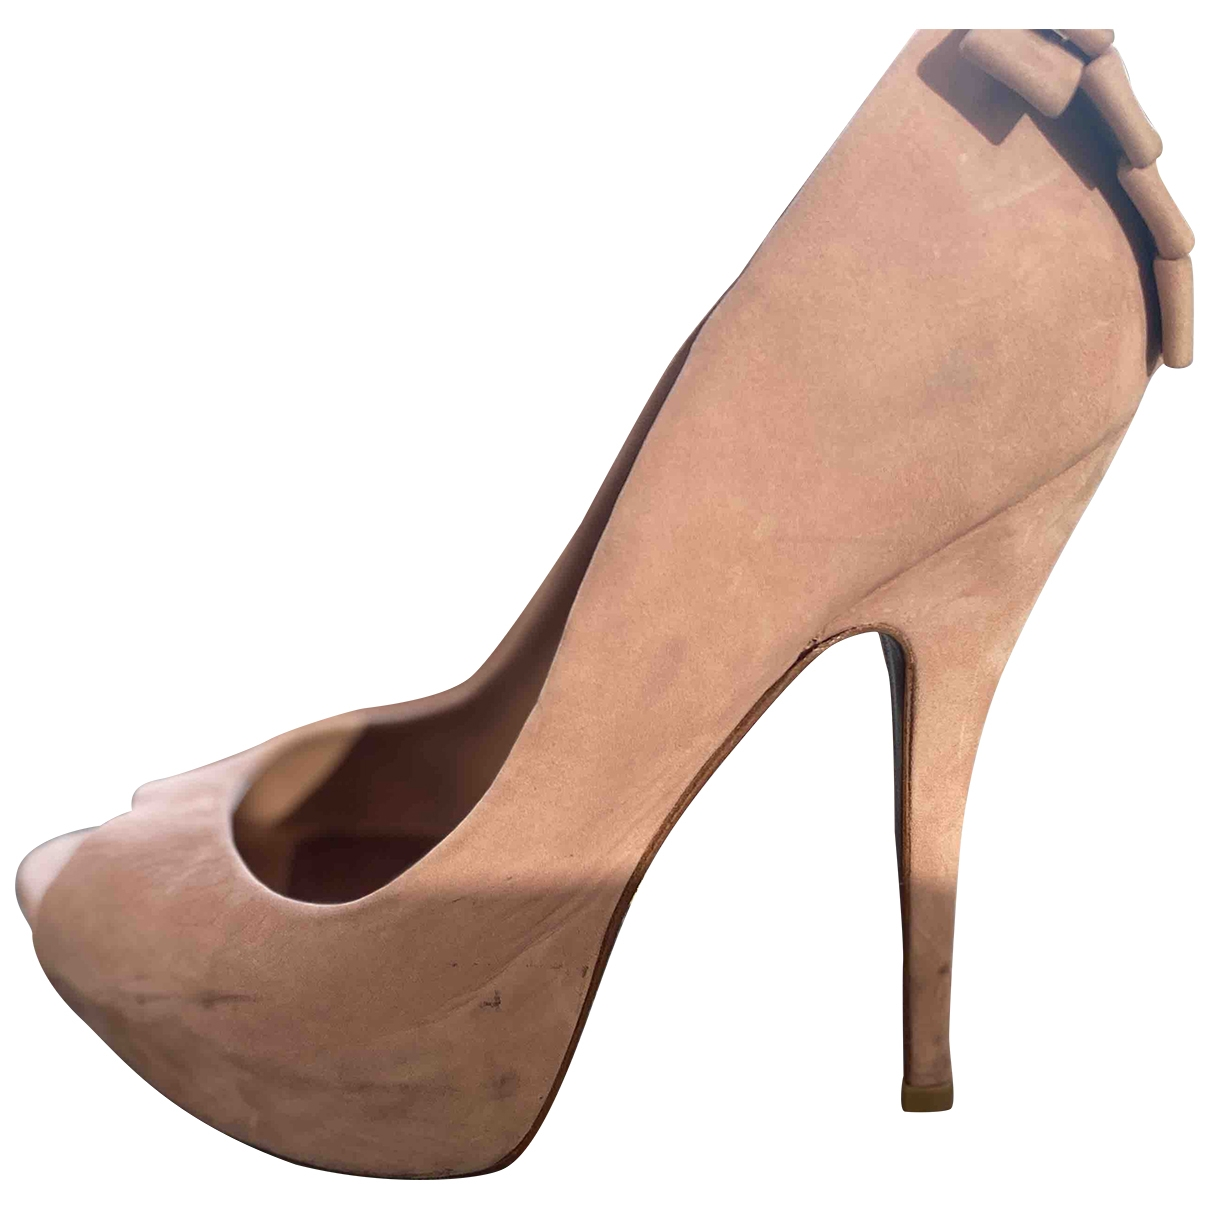 Schutz \N Pink Suede Heels for Women 39 EU